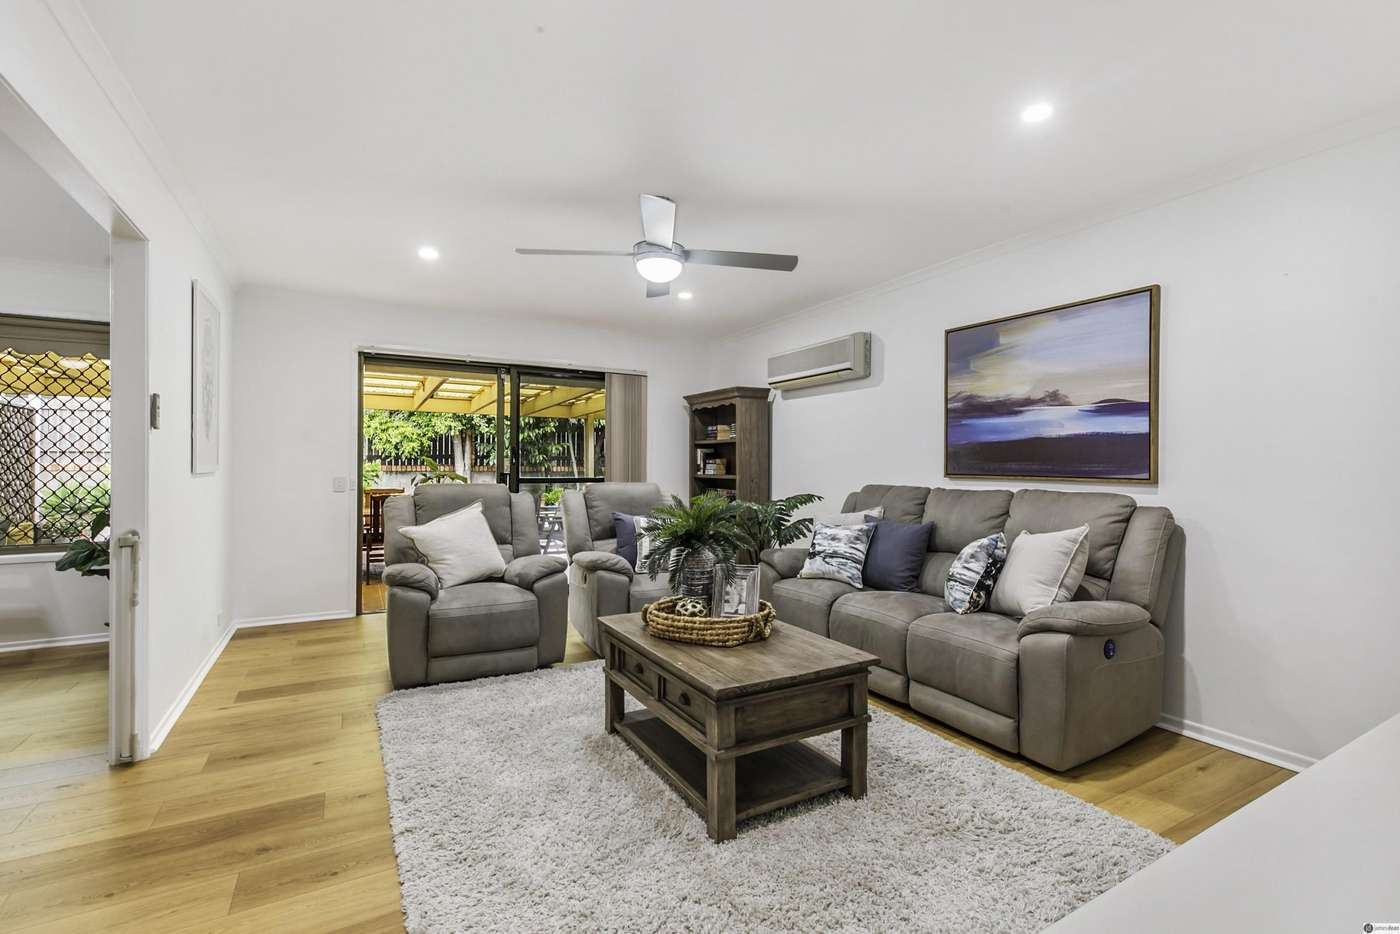 Sixth view of Homely house listing, 127 Killarney Cr, Capalaba QLD 4157